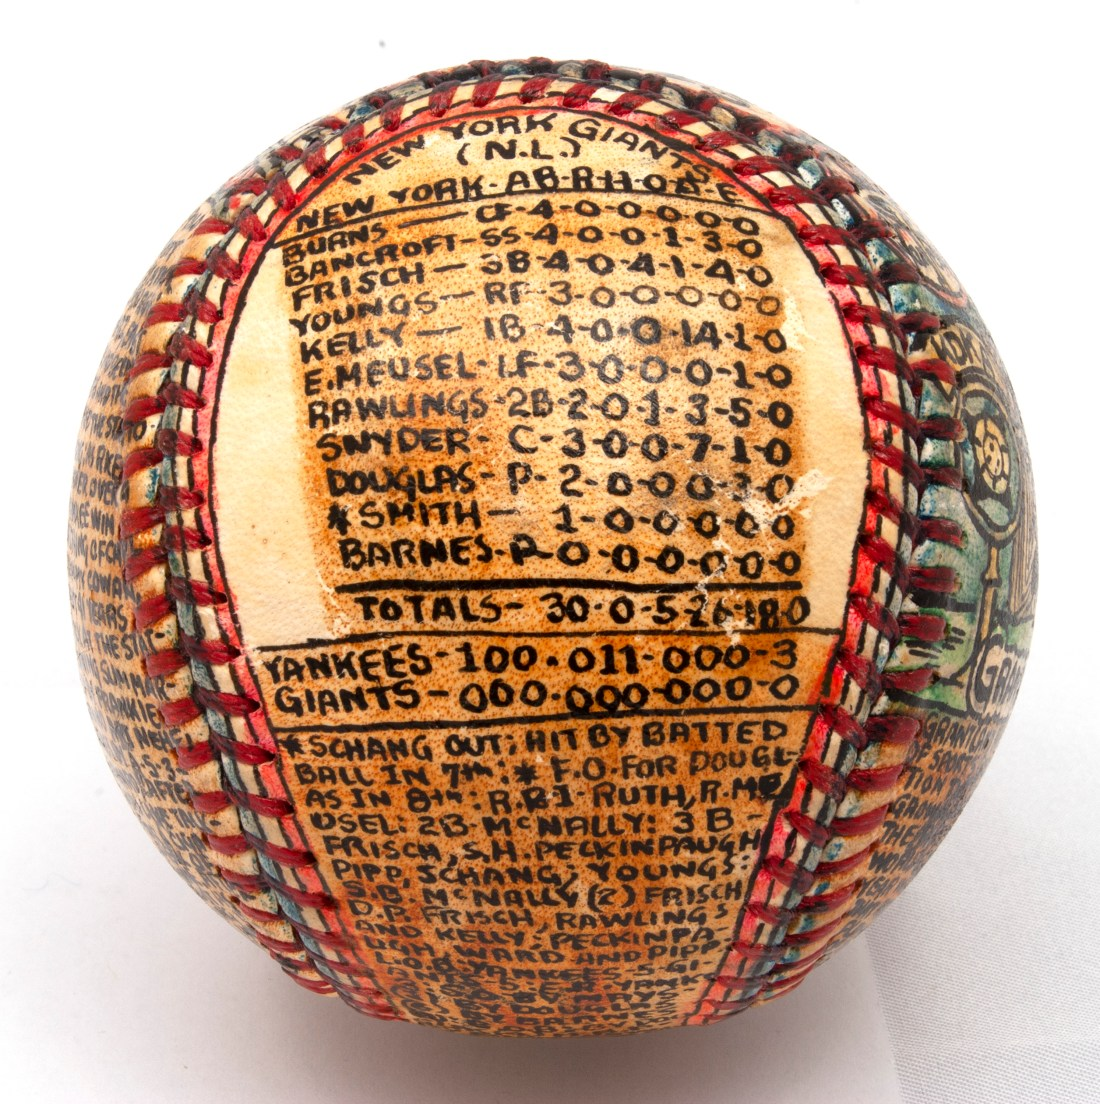 Another angle on the baseball transformed by self-taught artist George Sosnak, showing statistics and facts about the 1921 World Series between the Yankees and the Giants.